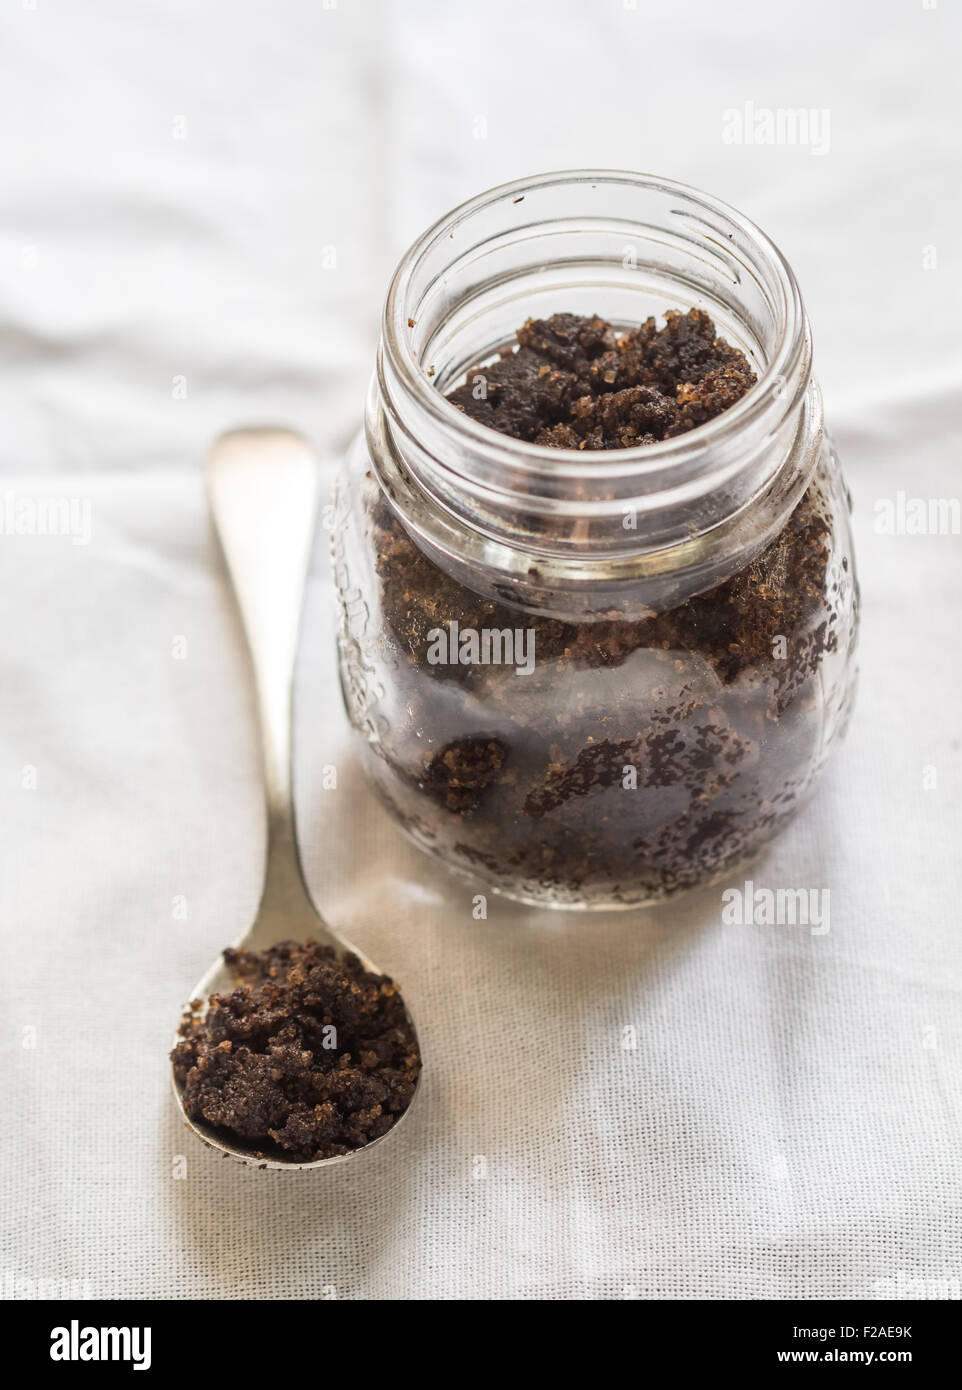 Homemade face and body organic all natural coffee scrub (peeling) in a glass jar placed on a clear background. Spoon - Stock Image